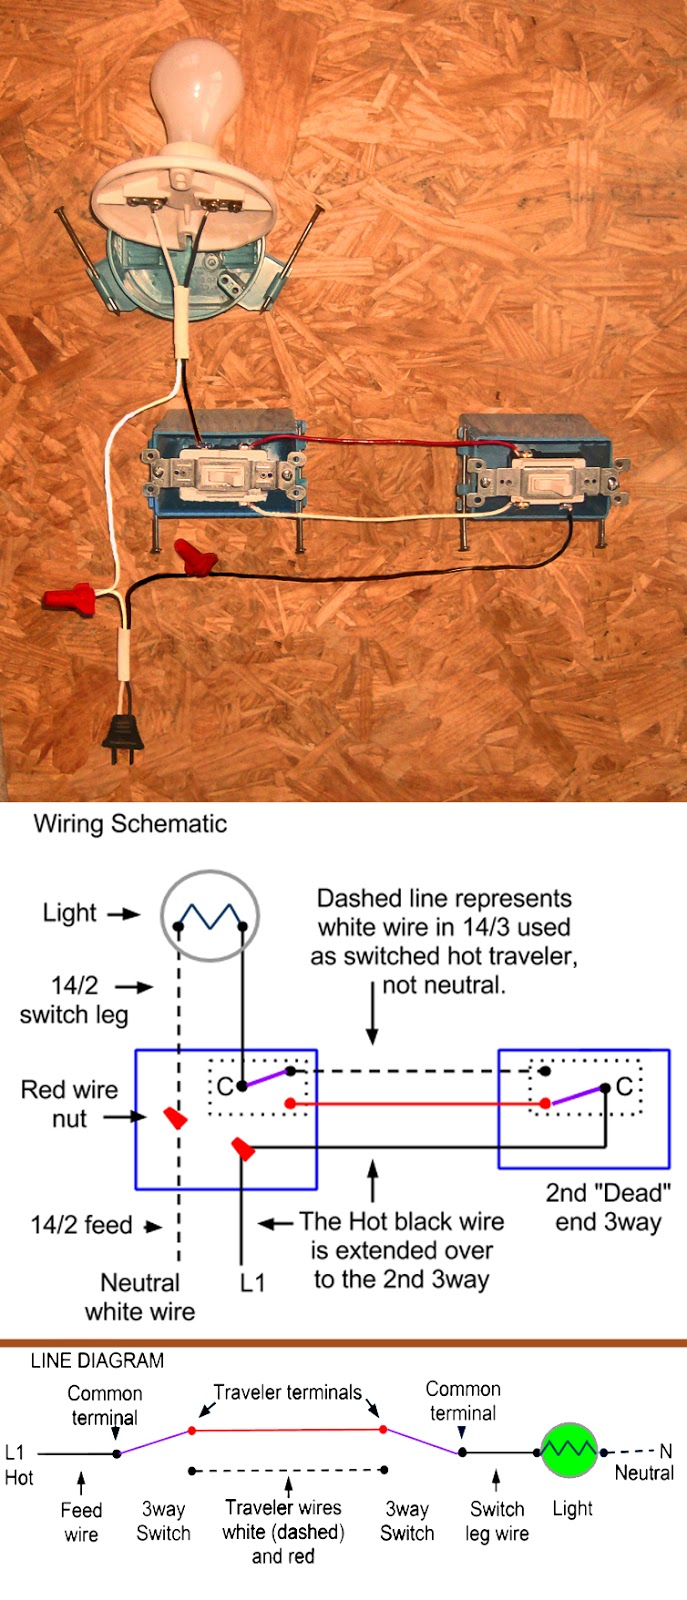 How To Wire Up A Switch Leg Simple Wiring Schema 3 Way Diagram Led Methods Dead End And Radical S3 Light Electrical